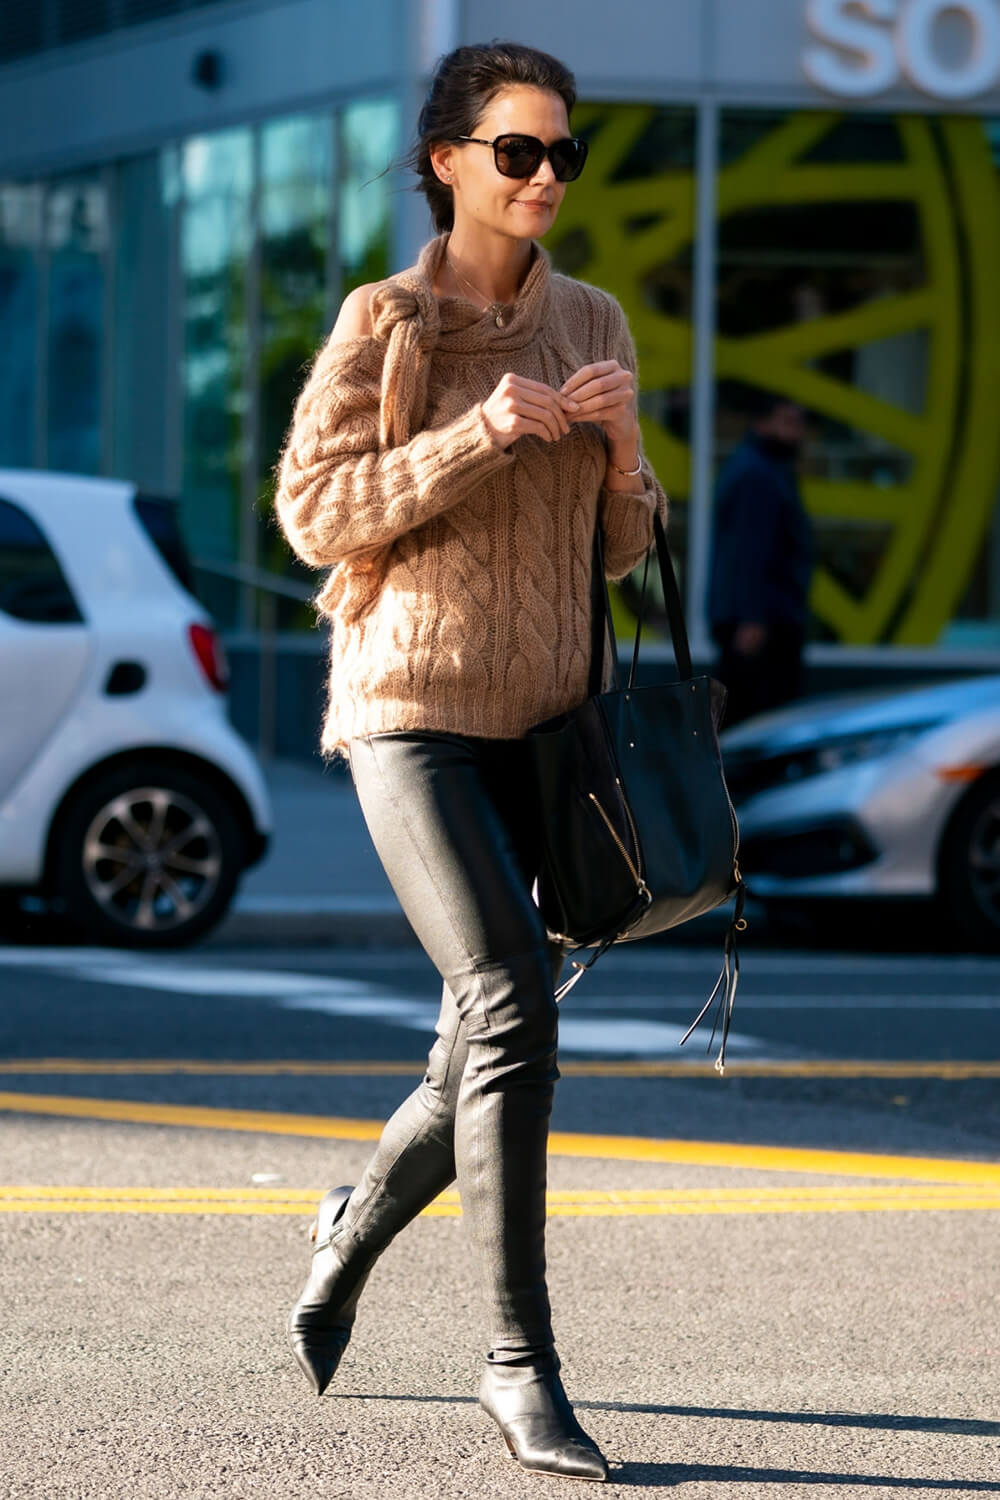 Katie Holmes out in Midtown NYC